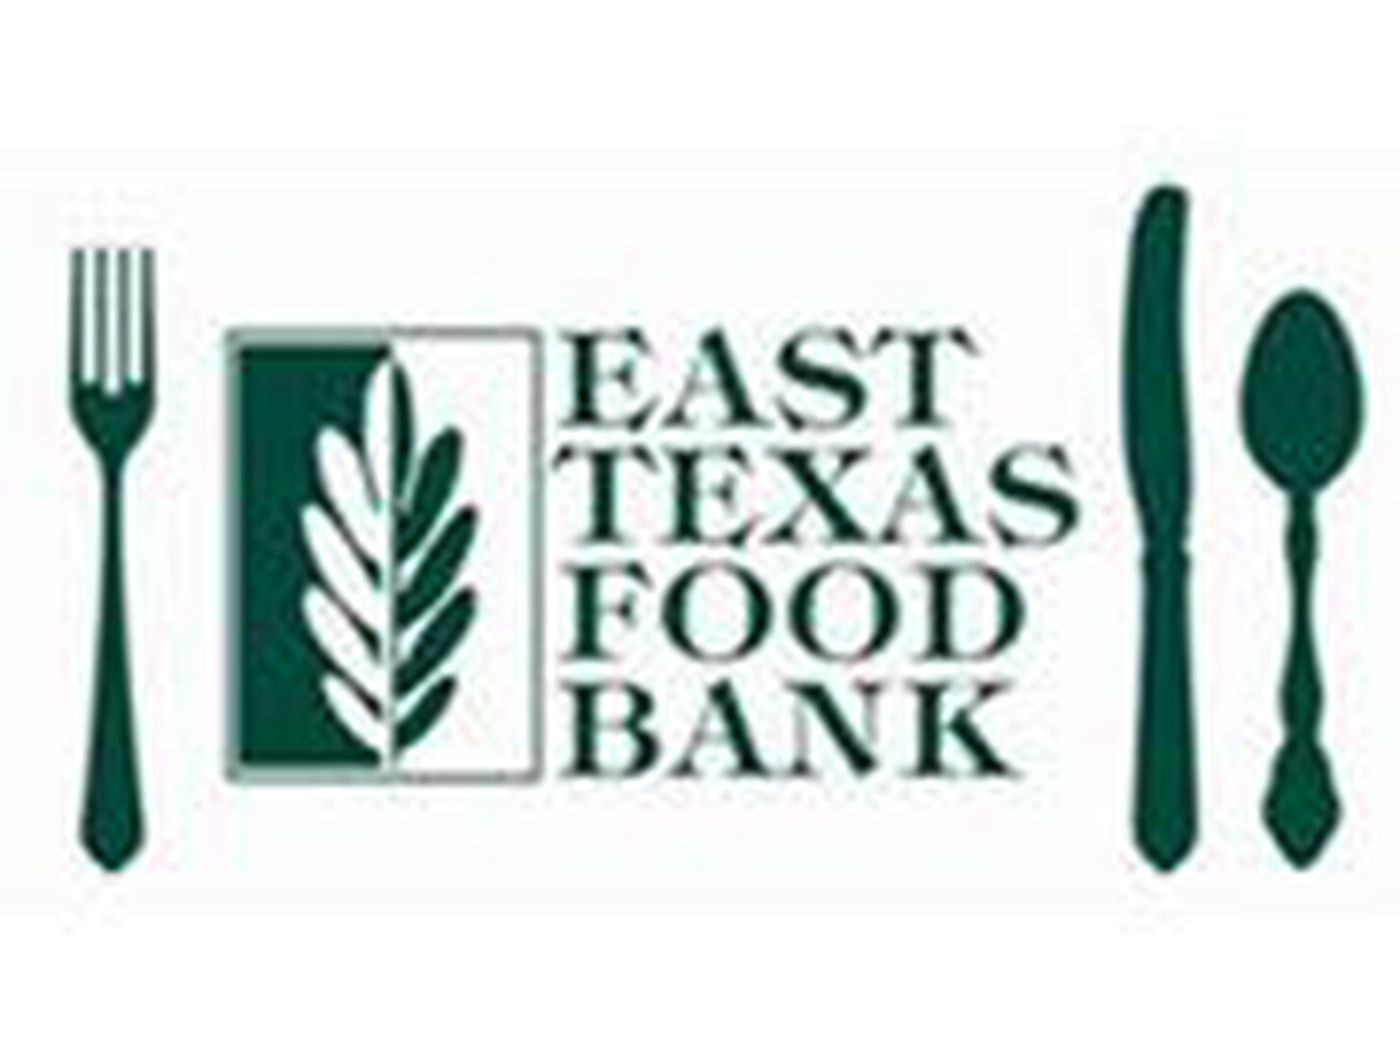 East Texas Food Bank Provides Free Meals